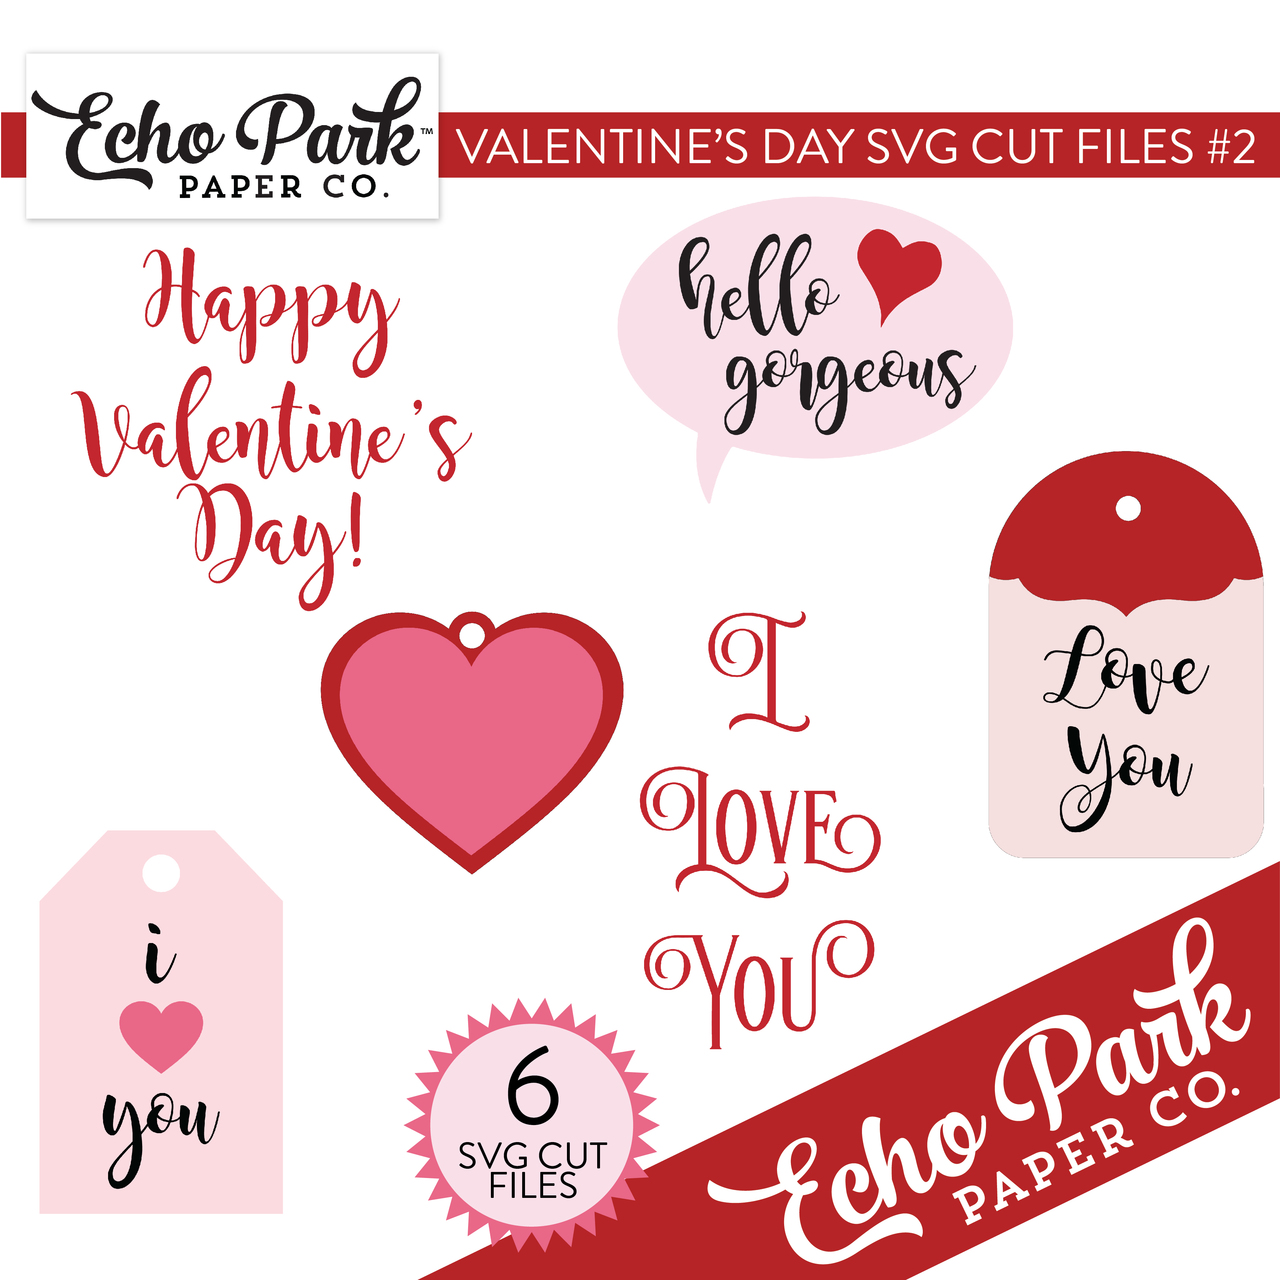 Valentines SVG Cut Files #2